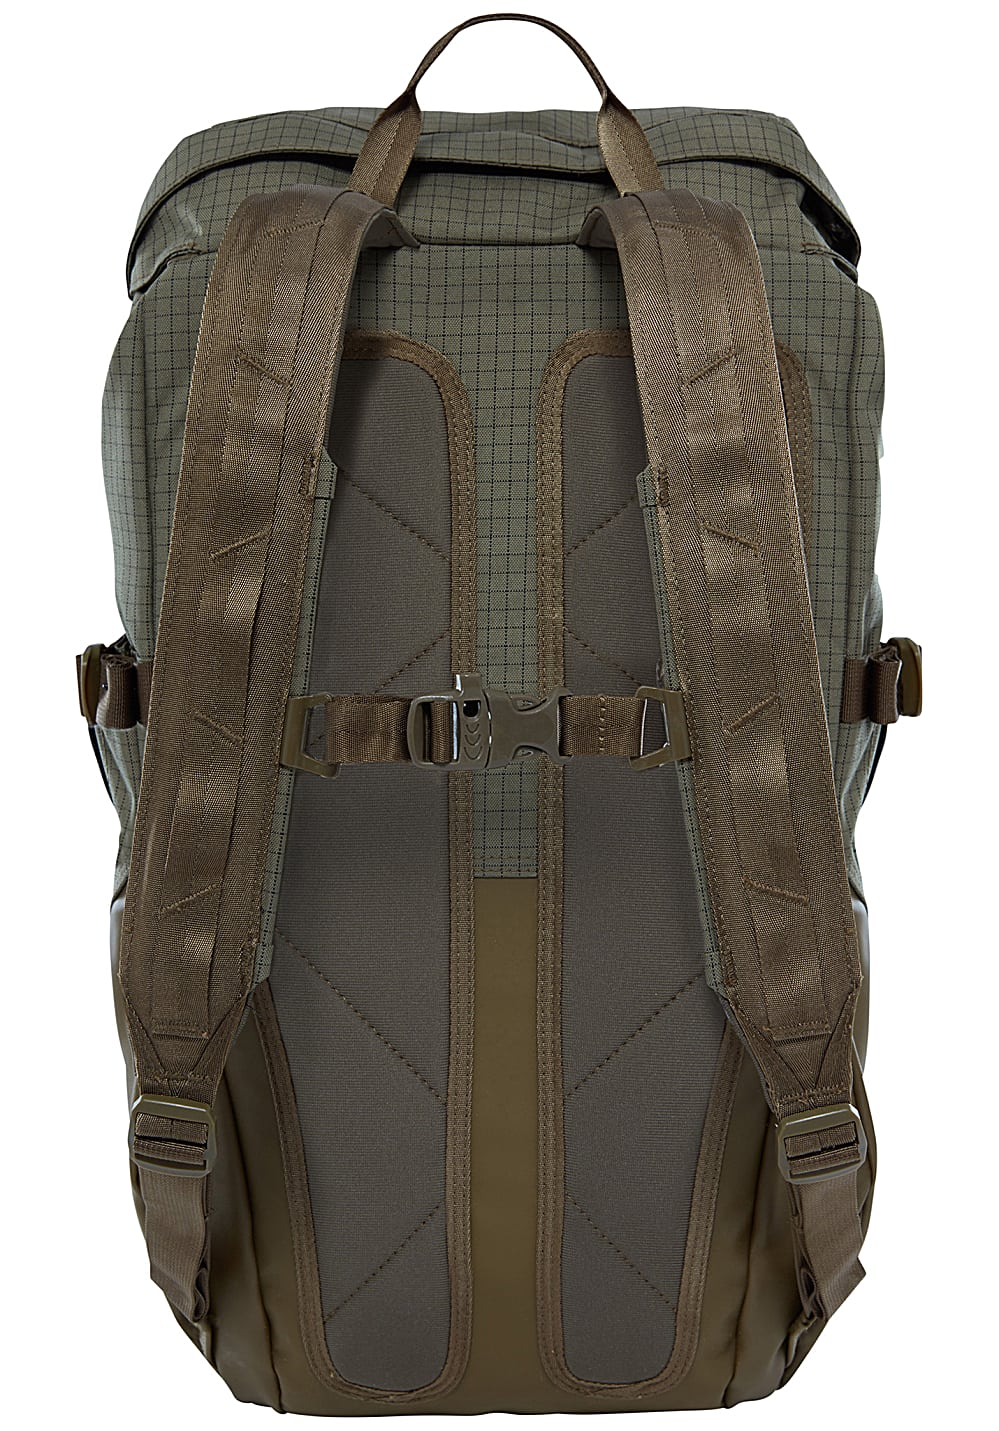 281c753c5 THE NORTH FACE Homestead Roadtripper 30L - Backpack - Green